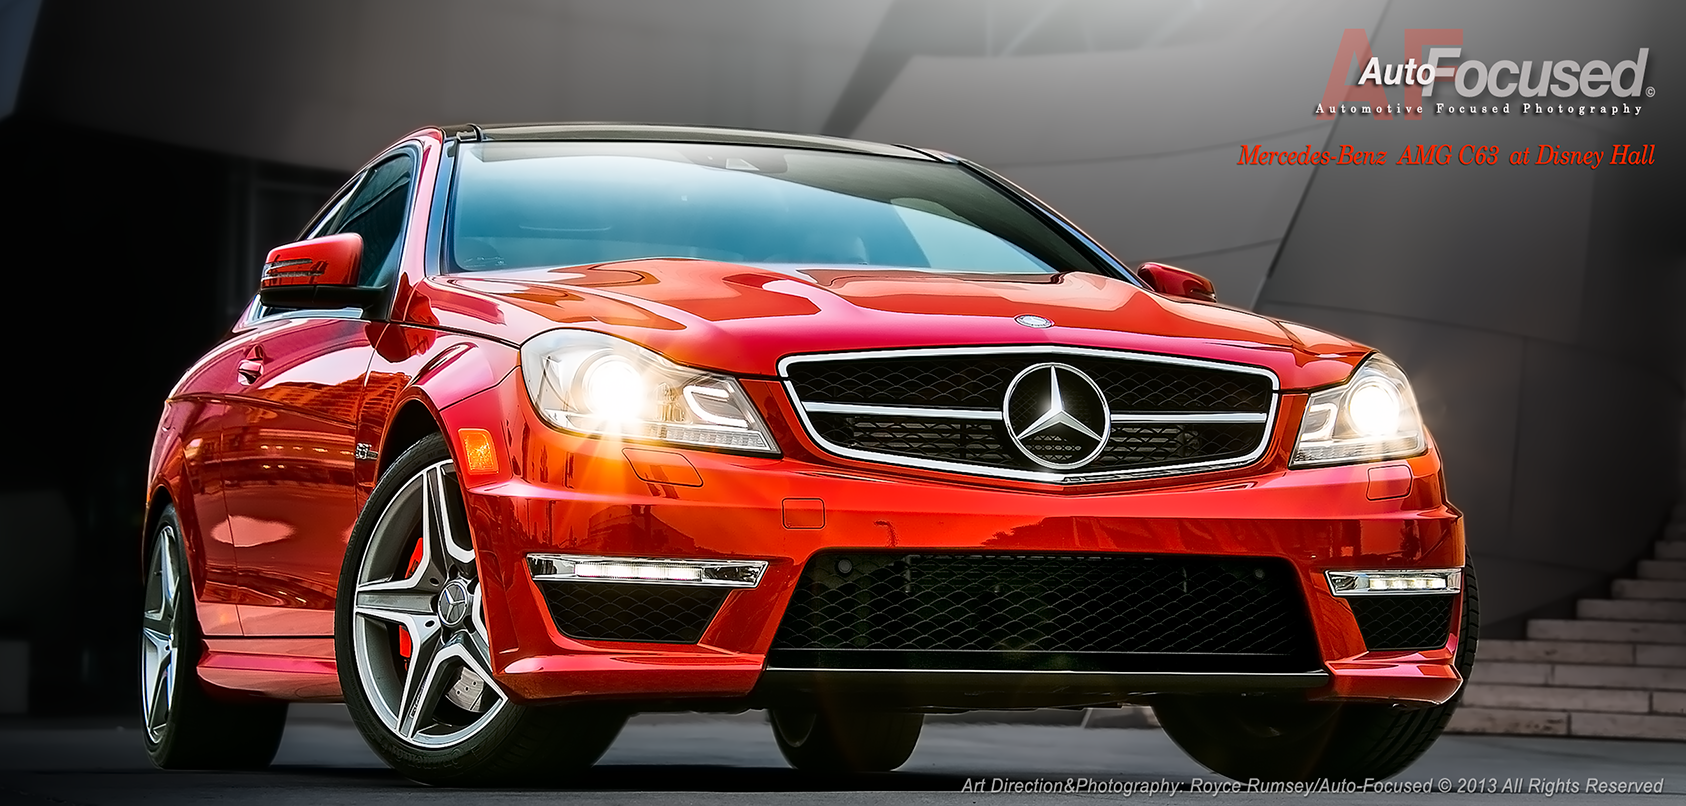 Selection Of Photos From C63 AMG Marketing And Promotional Photoshoot In Downtown  Los Angeles #mb #mbcar #mbphoto #mbcars #mercedes #benz #amg #autofocused  ...